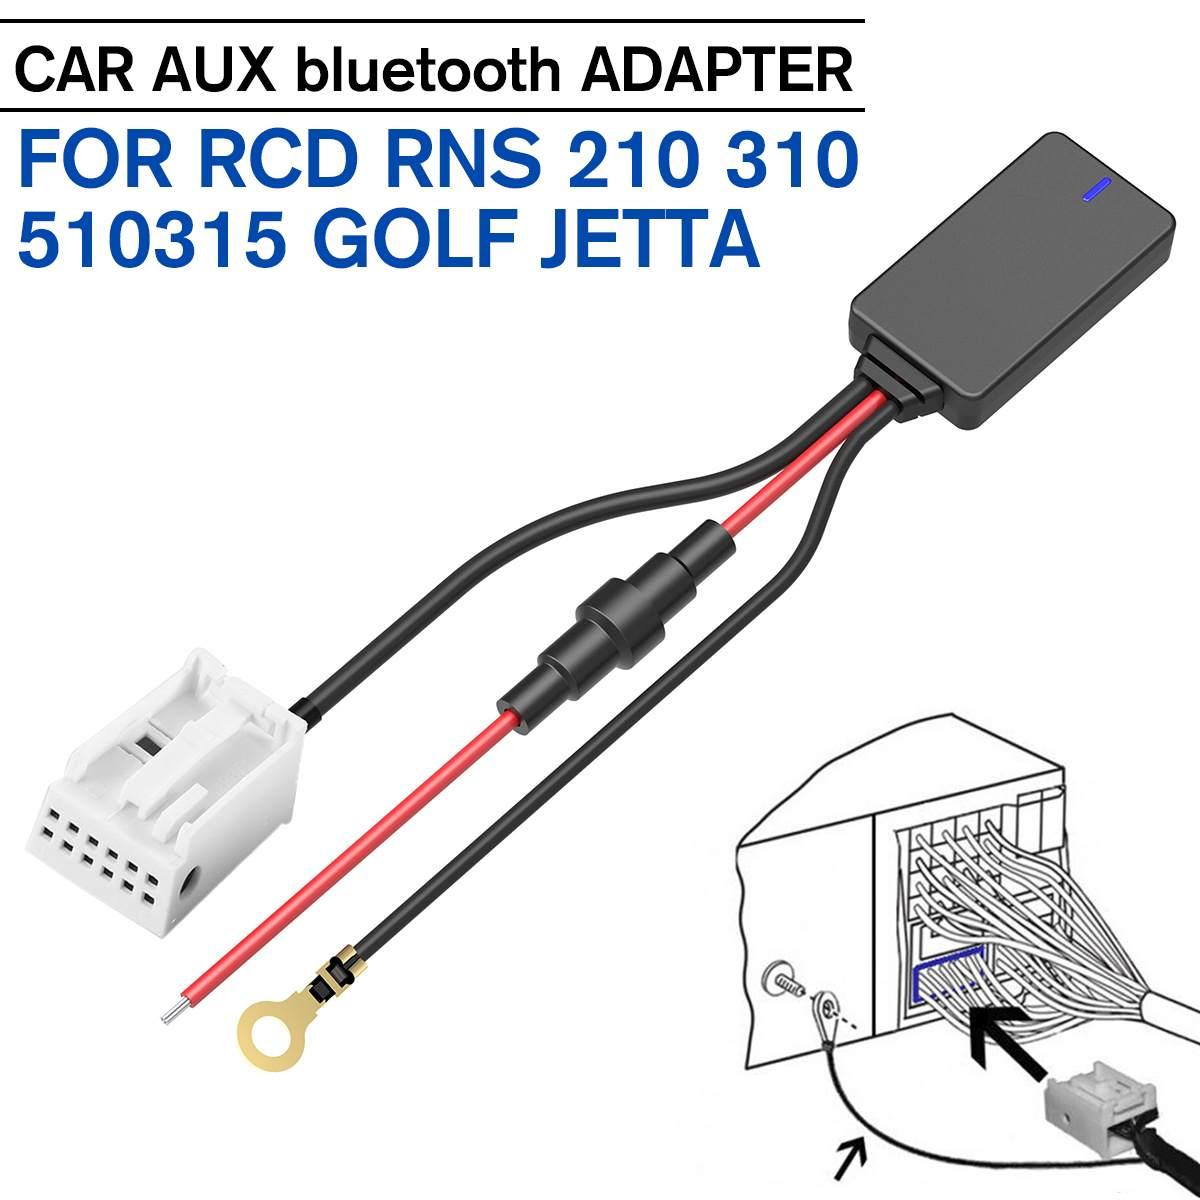 Aux Bluetooth Adapter Car Hands-free MP3 Jack Music Cable For RCD RNS 210 310 510 315 For VW For Polo For Passat For Golf R32